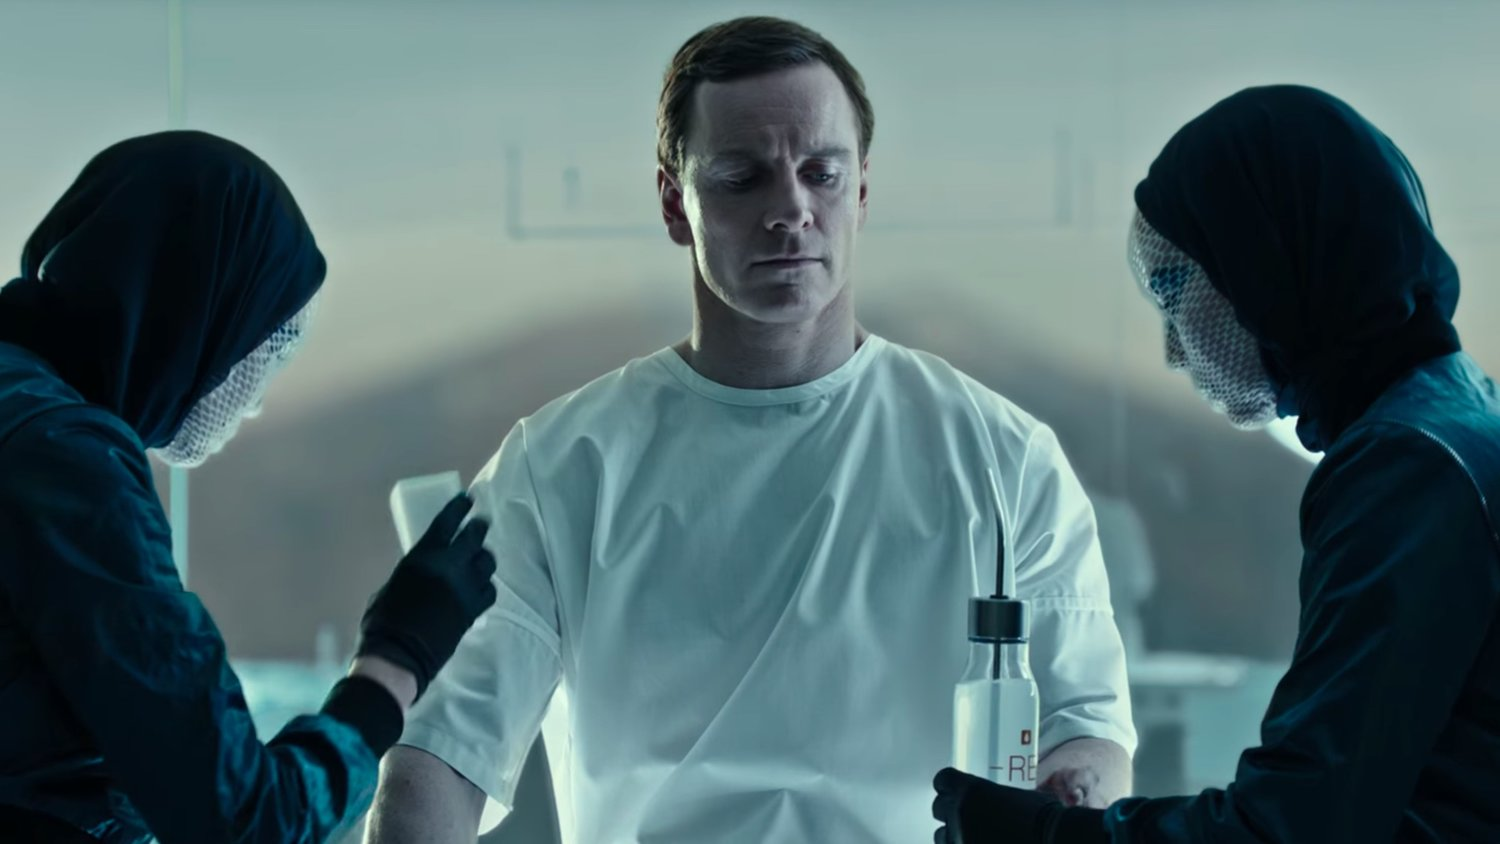 New ALIEN: COVENANT Promo Shows the Eerie Creation of Michael Fassbender's Walter